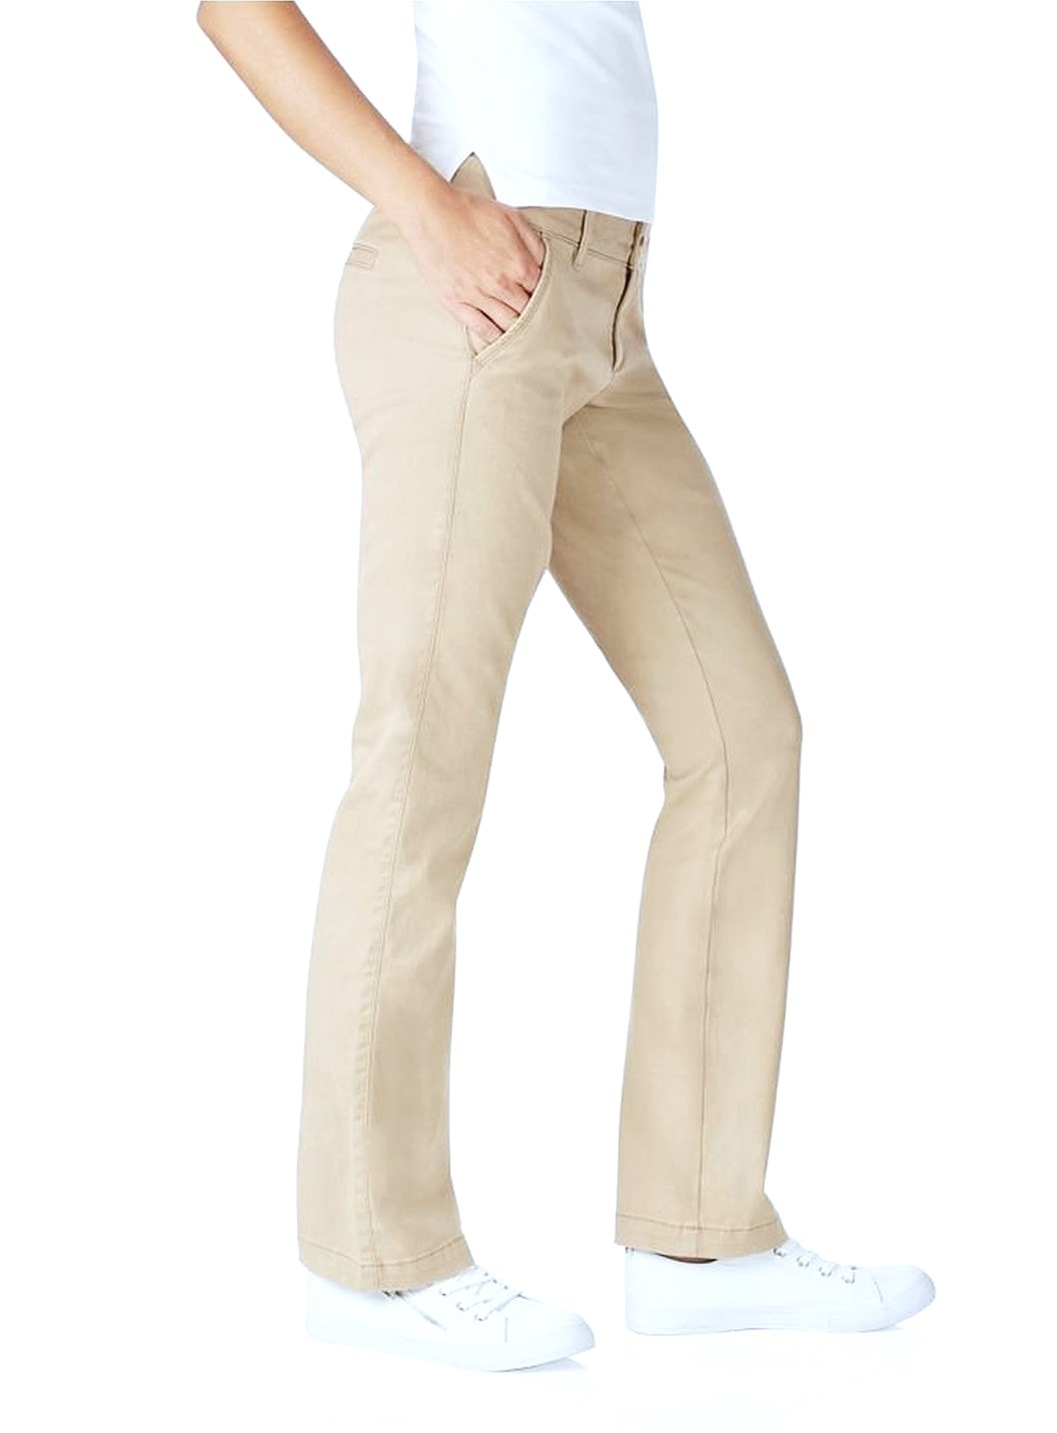 Innovative Dickies Womens Work Pants  Original  FP774  Khaki  8T